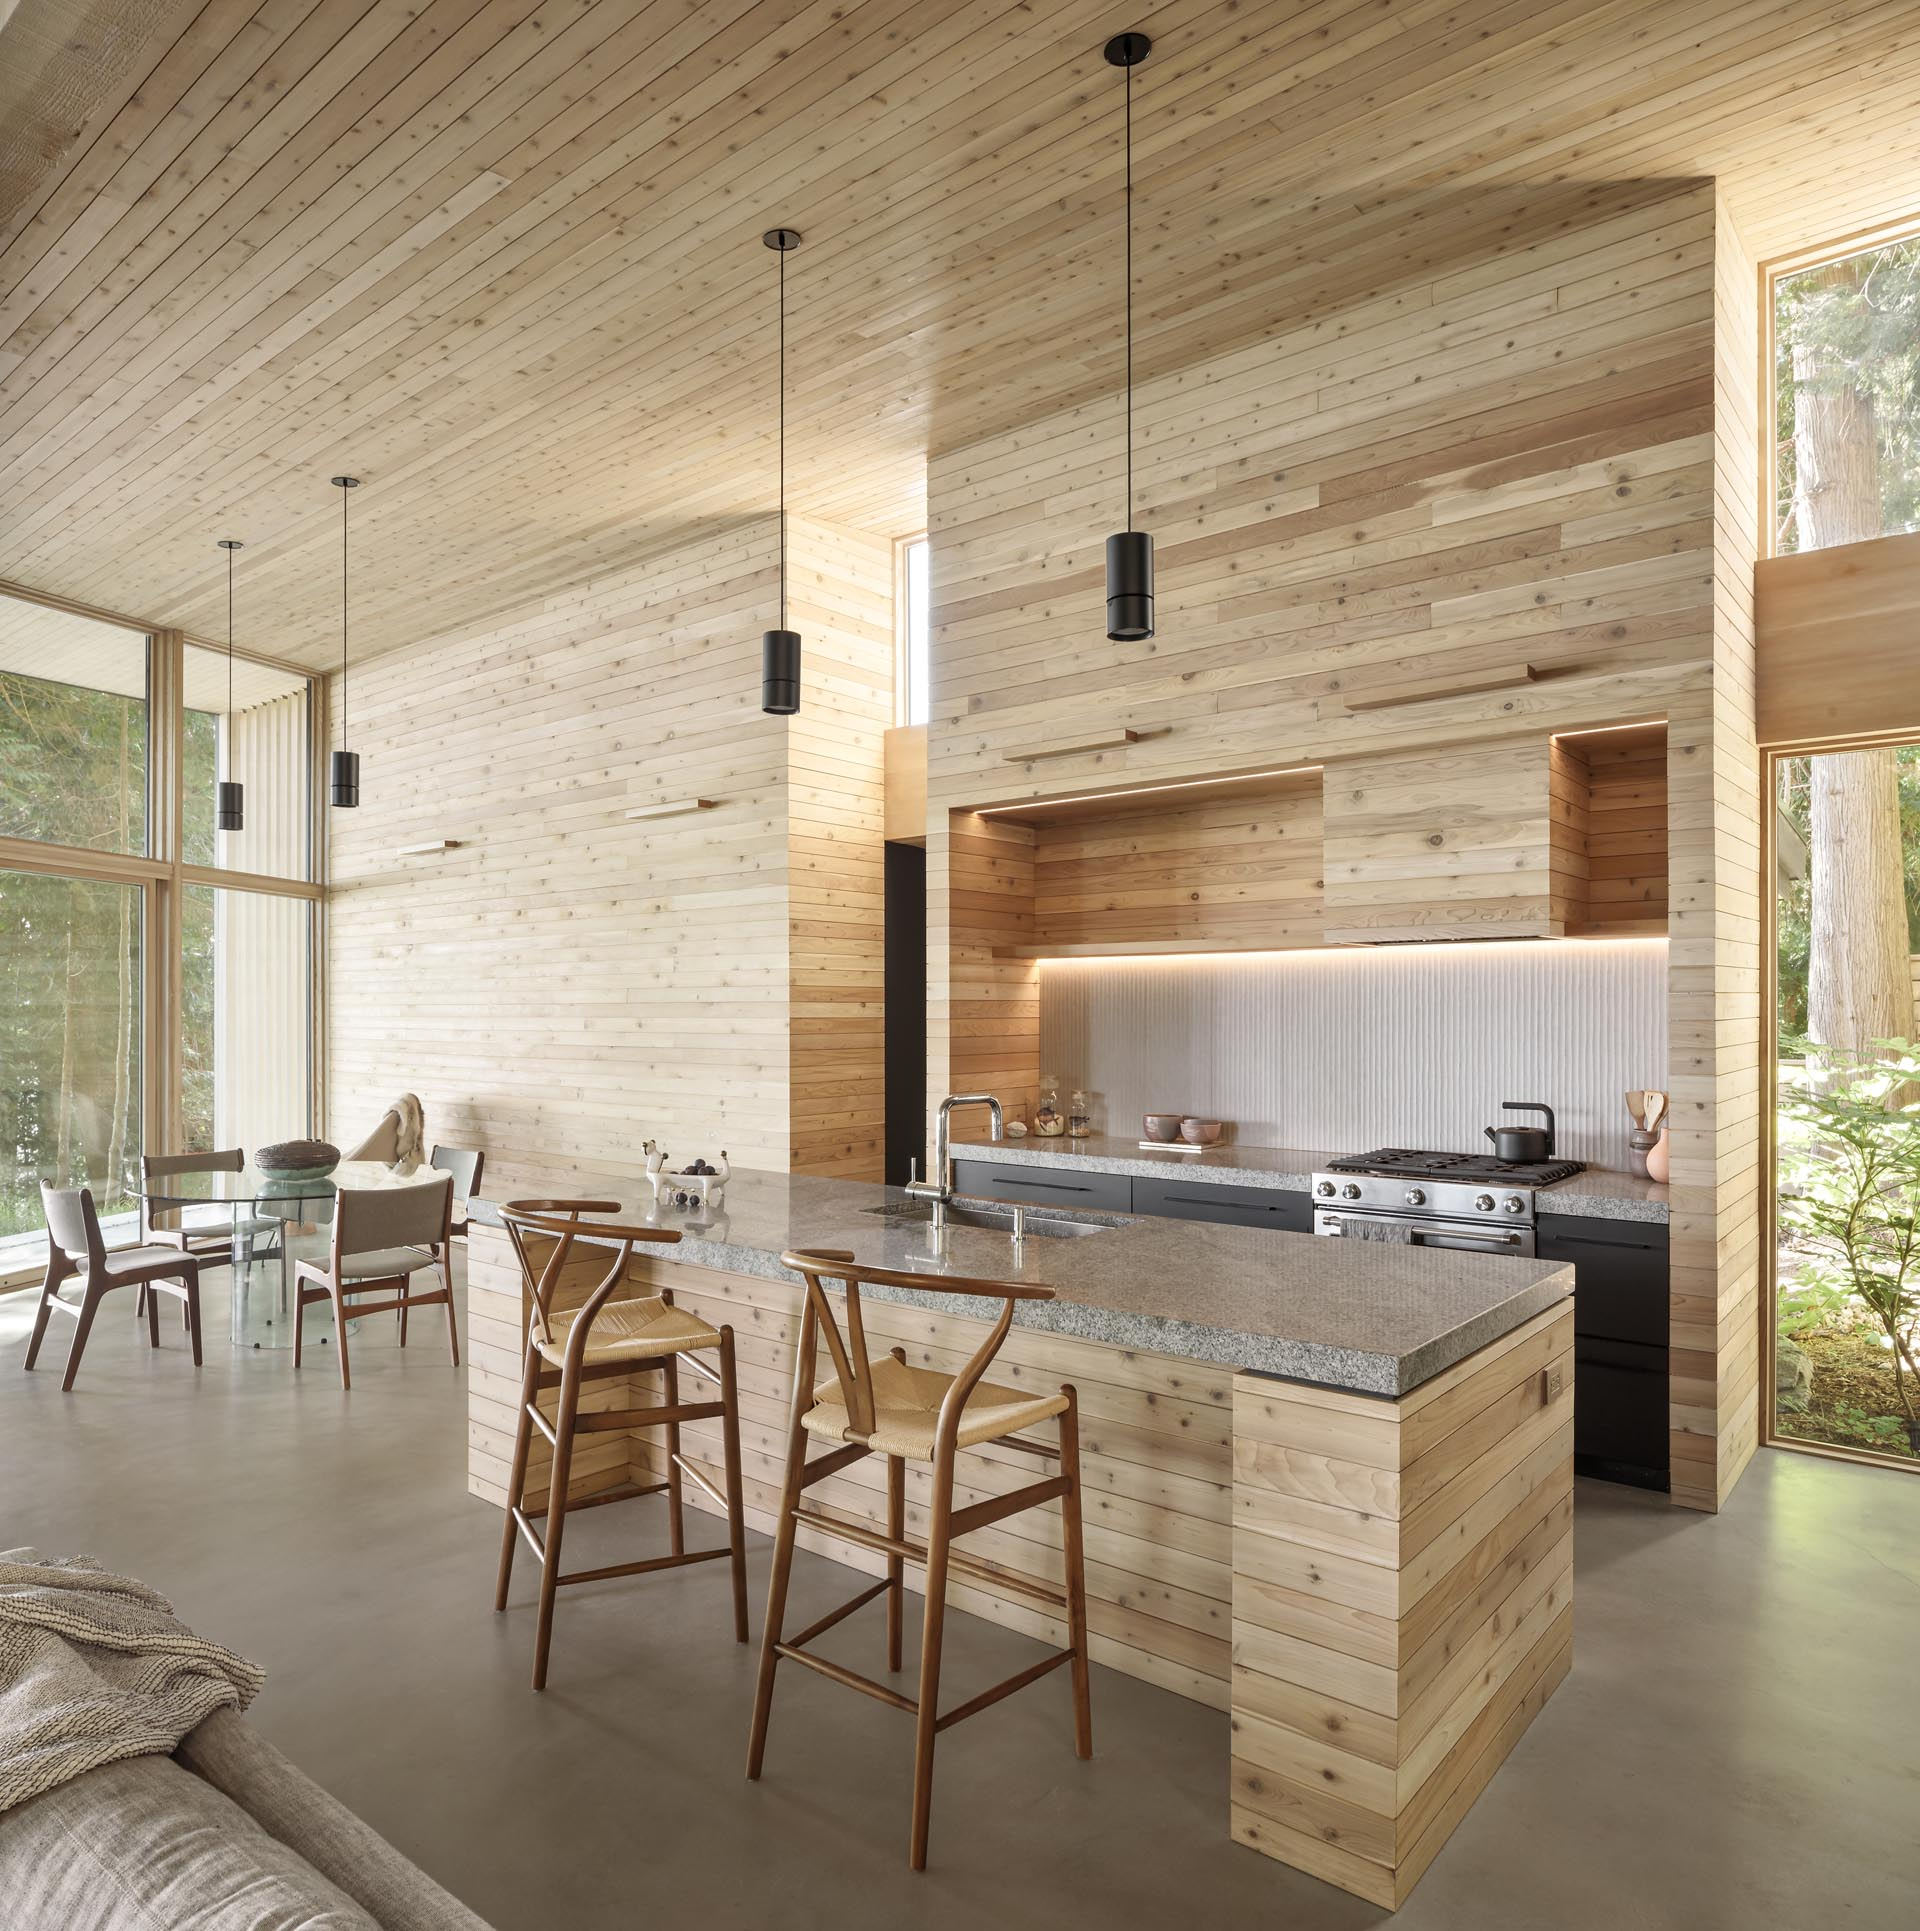 This modern kitchen lined with cedar,  has been designed with thick countertops, and dark lower cabinets.